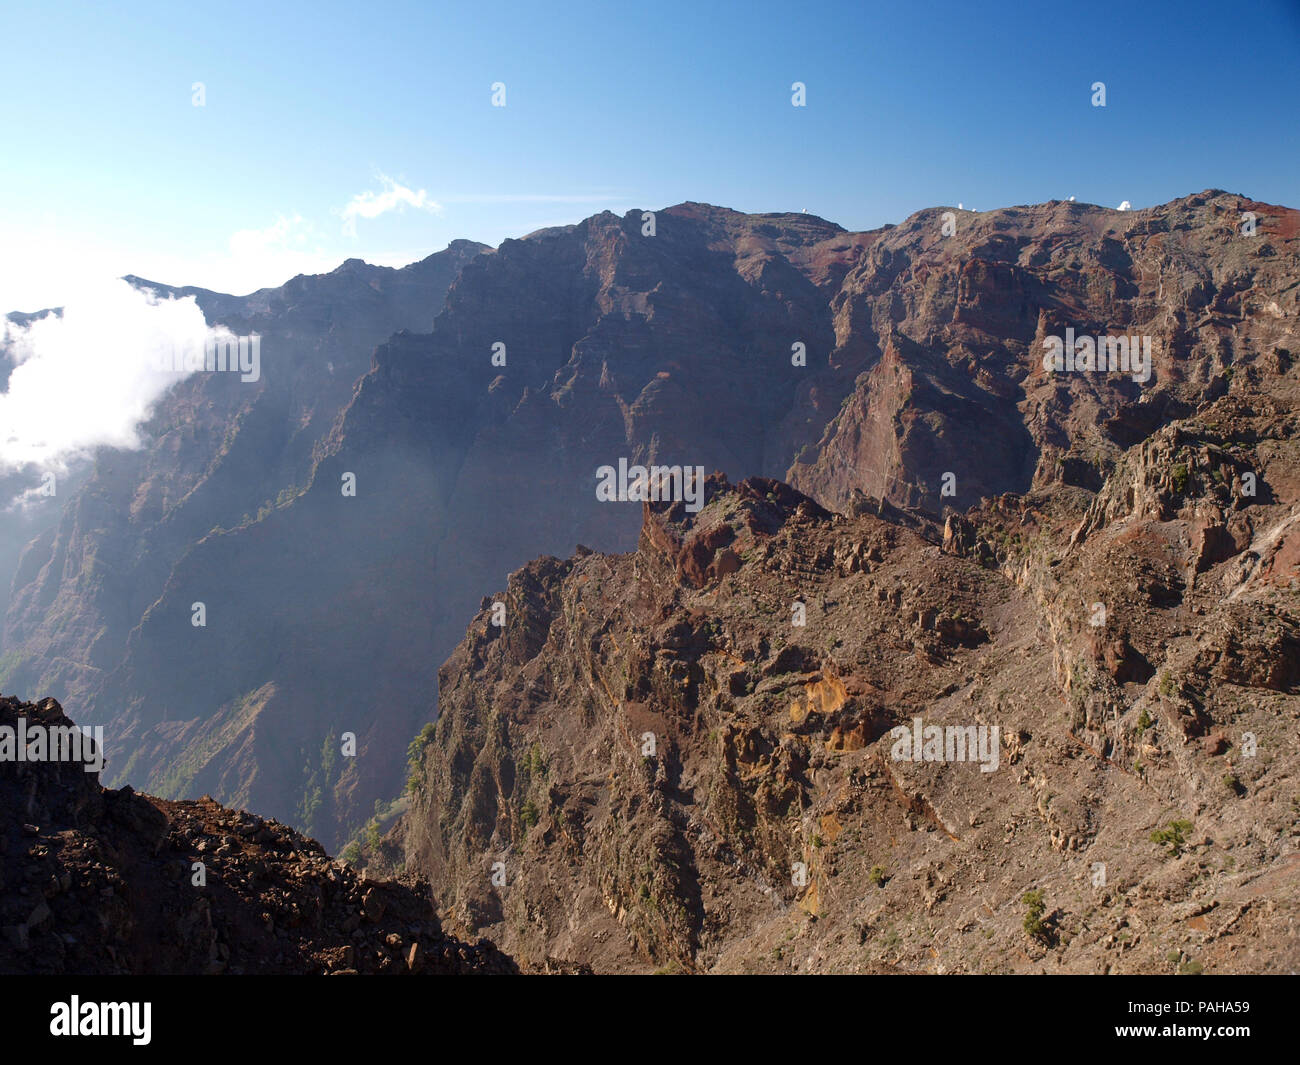 Mists clinging to the sides of the Caldera de Taburiente  on the Canary Island of La Palma - Stock Image